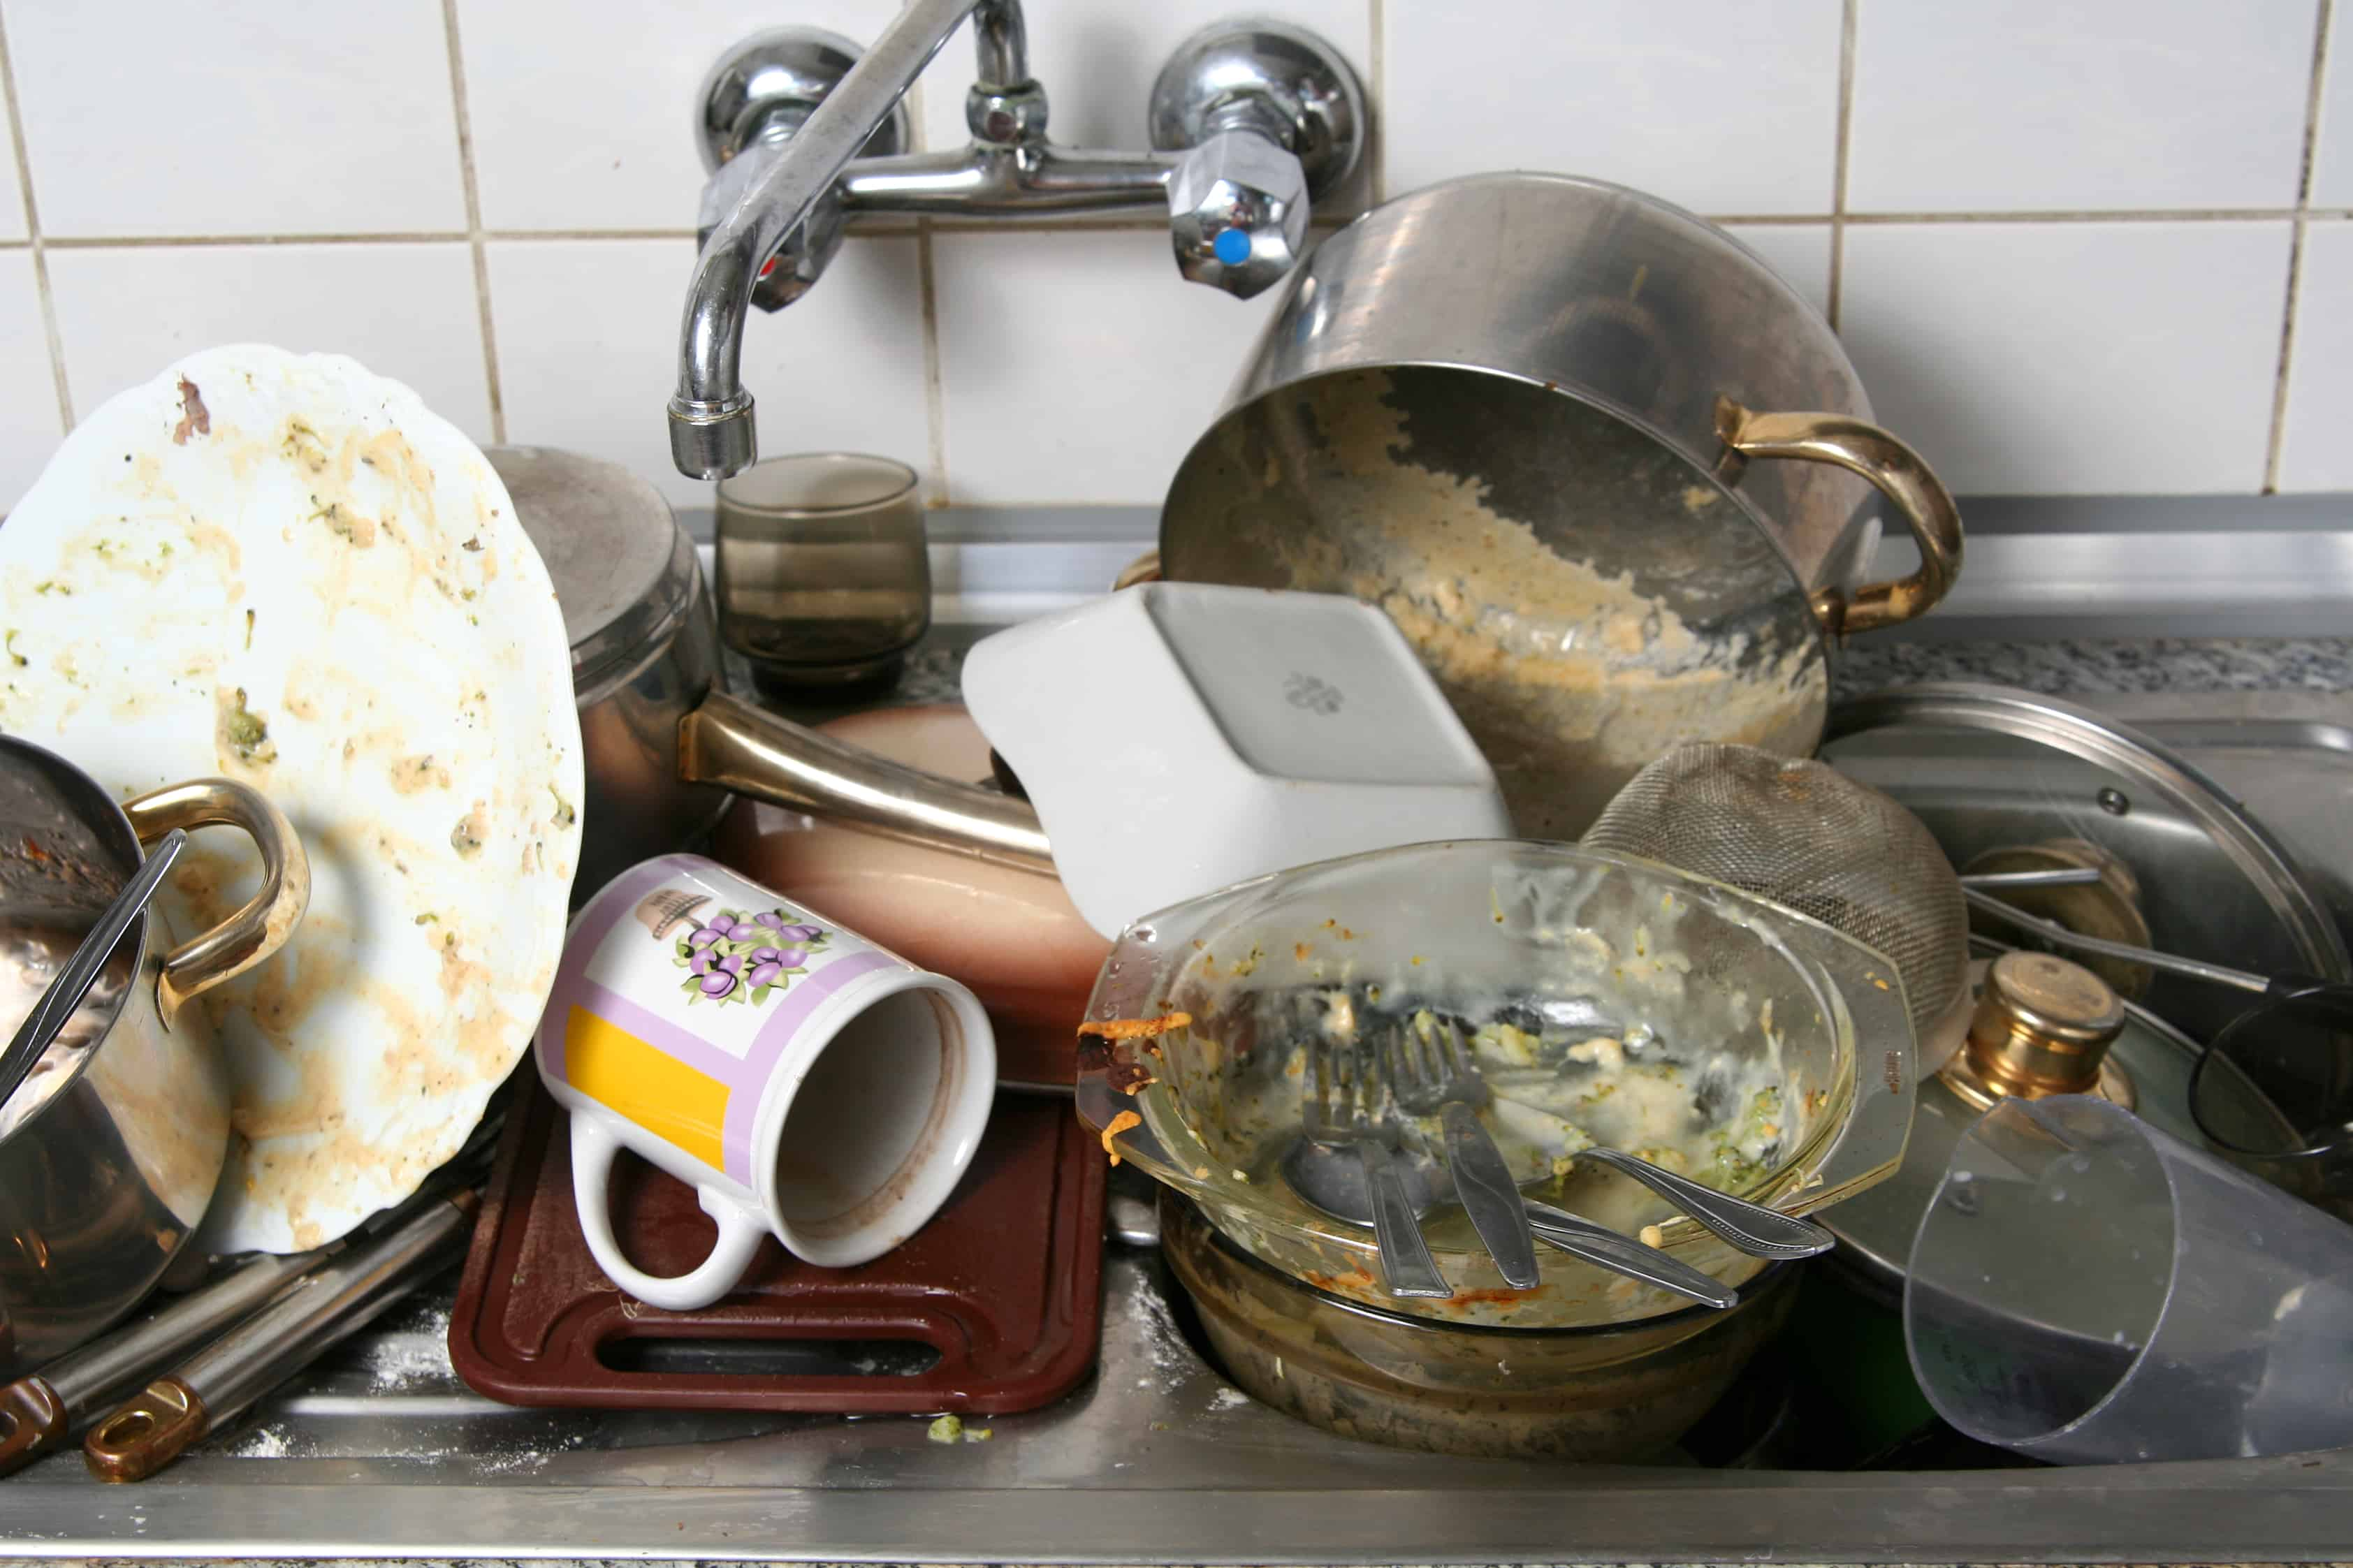 Astonishing 7 Tips For Creating Fewer Dirty Dishes The Organized Mom Interior Design Ideas Clesiryabchikinfo